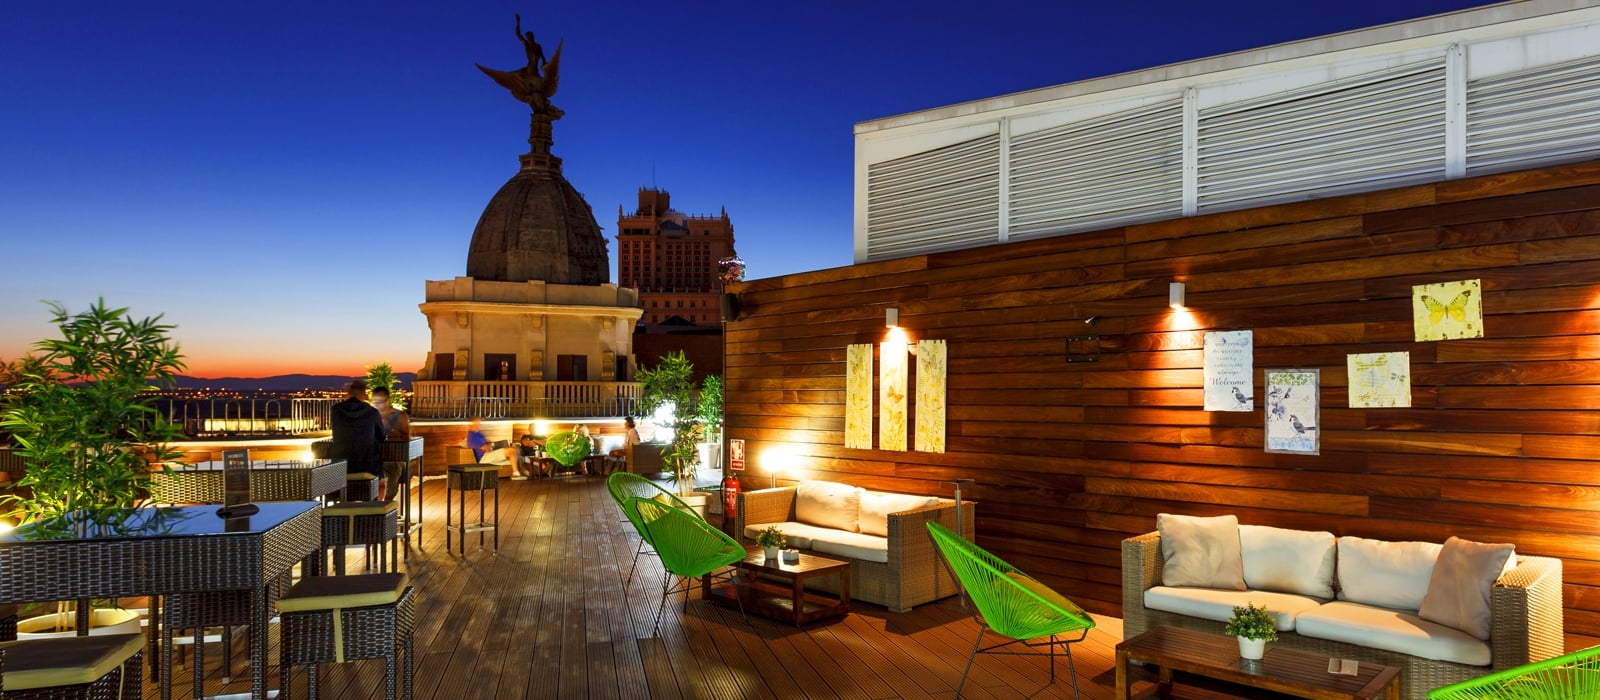 Promotions Hotel Vincci Madrid Vía 66 - Welcome to Madrid